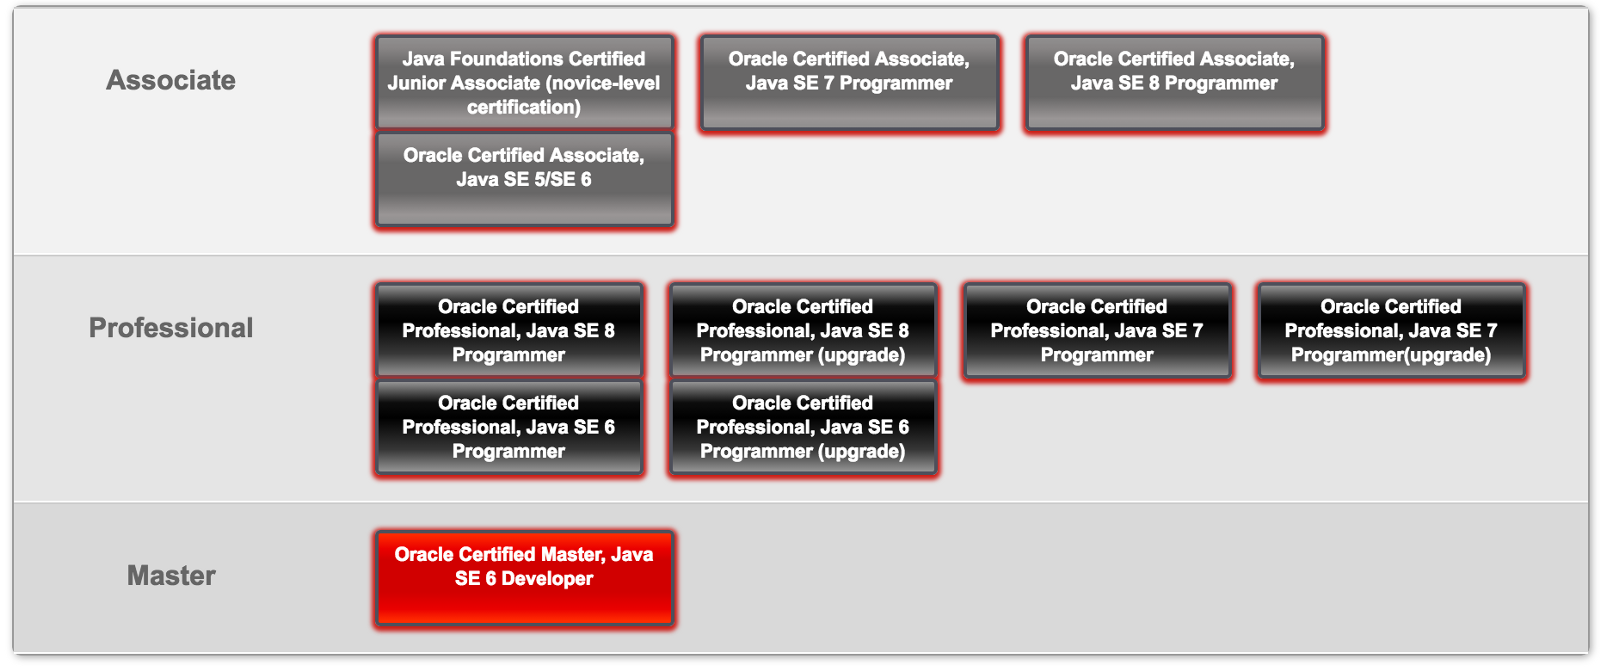 How Did I Become Certified Oracle Associate Marko B Medium